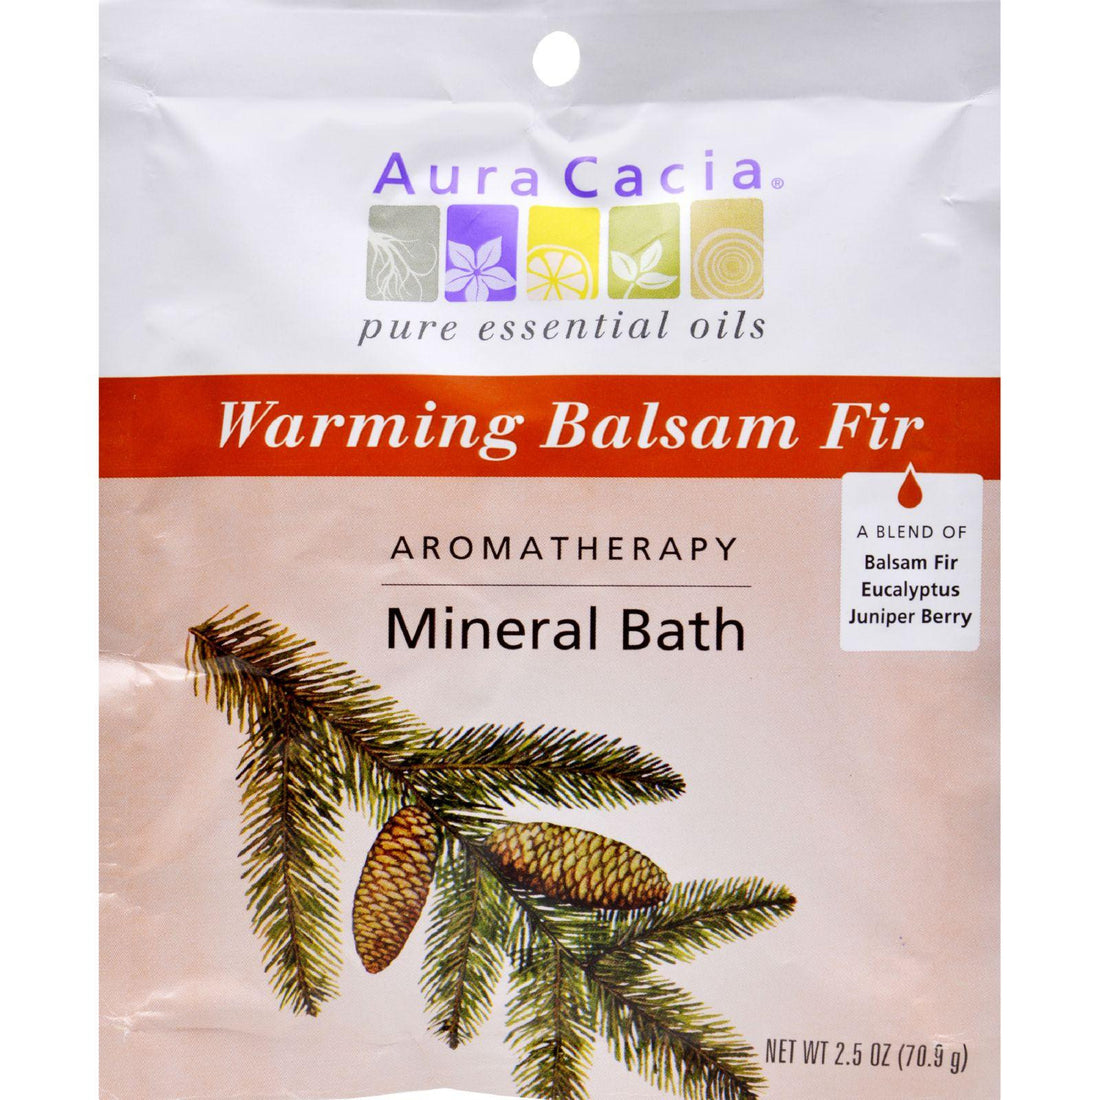 Mother Mantis: Aura Cacia Aromatherapy Mineral Bath Soothing Heat - 2.5 Oz - Case Of 6 Aura Cacia